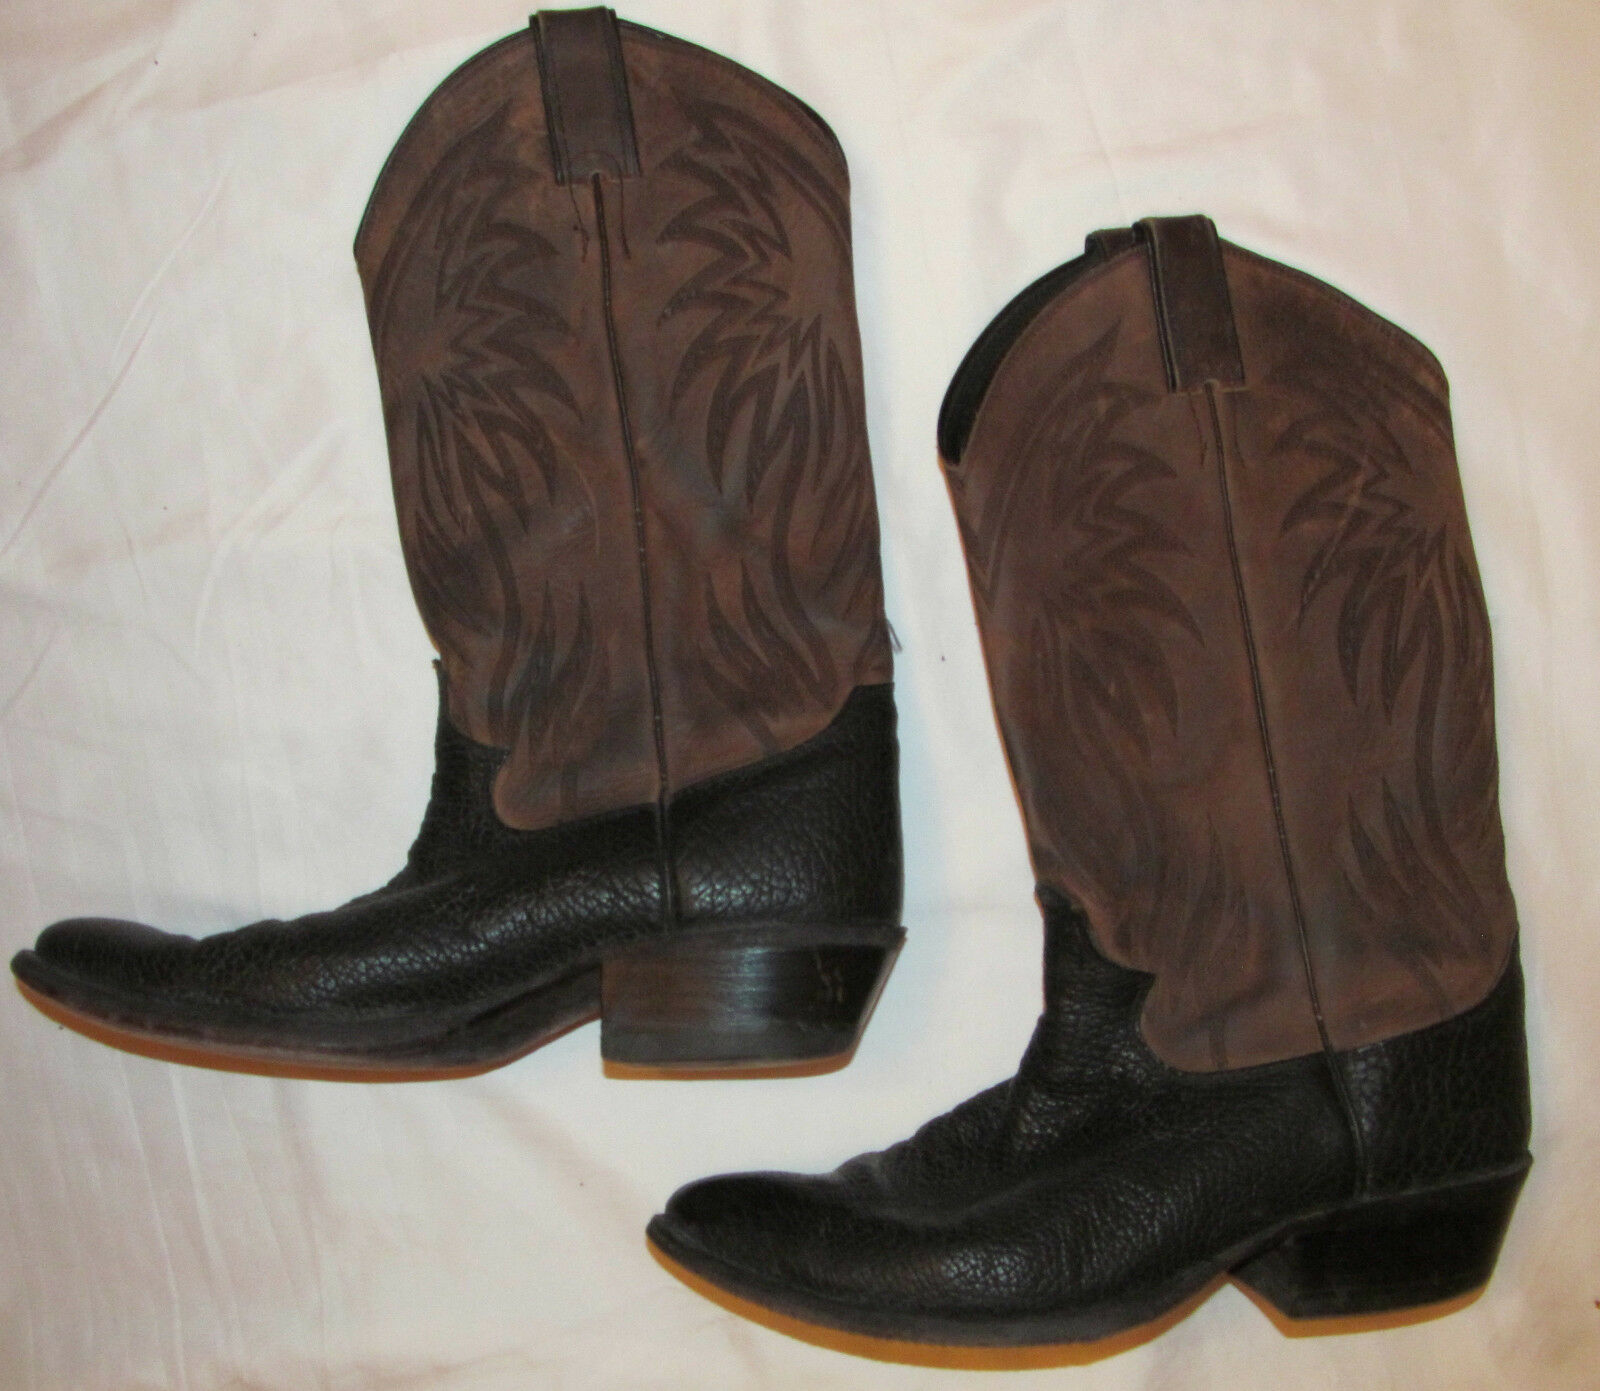 Vintage JUSTIN textured  grain leather tall pull on cowboy boots 7.5 D